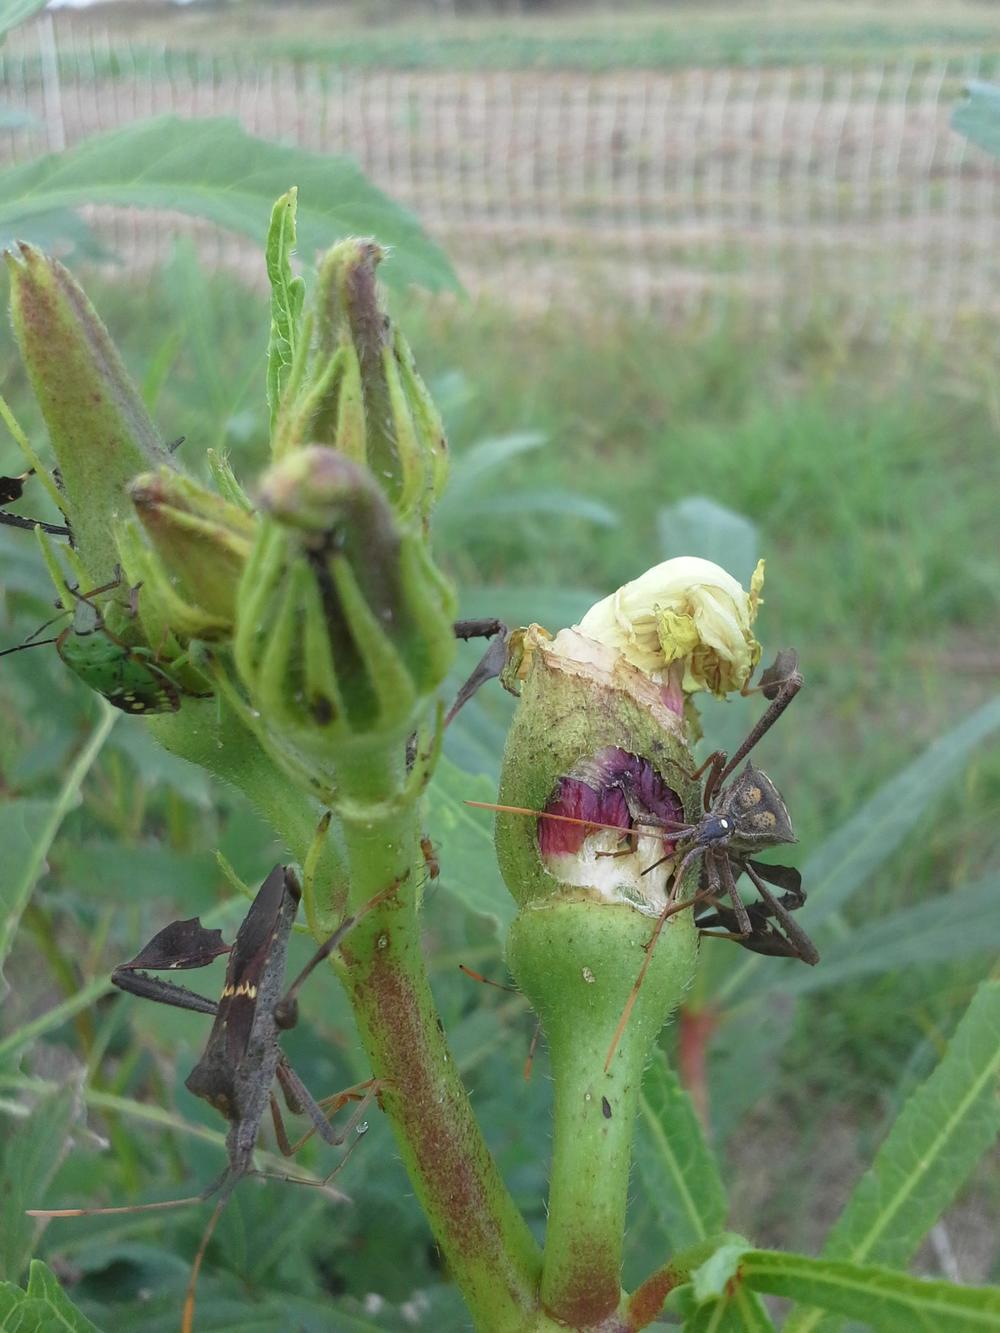 A Texas favorite...stinkbugs. They love okra as much as we do.